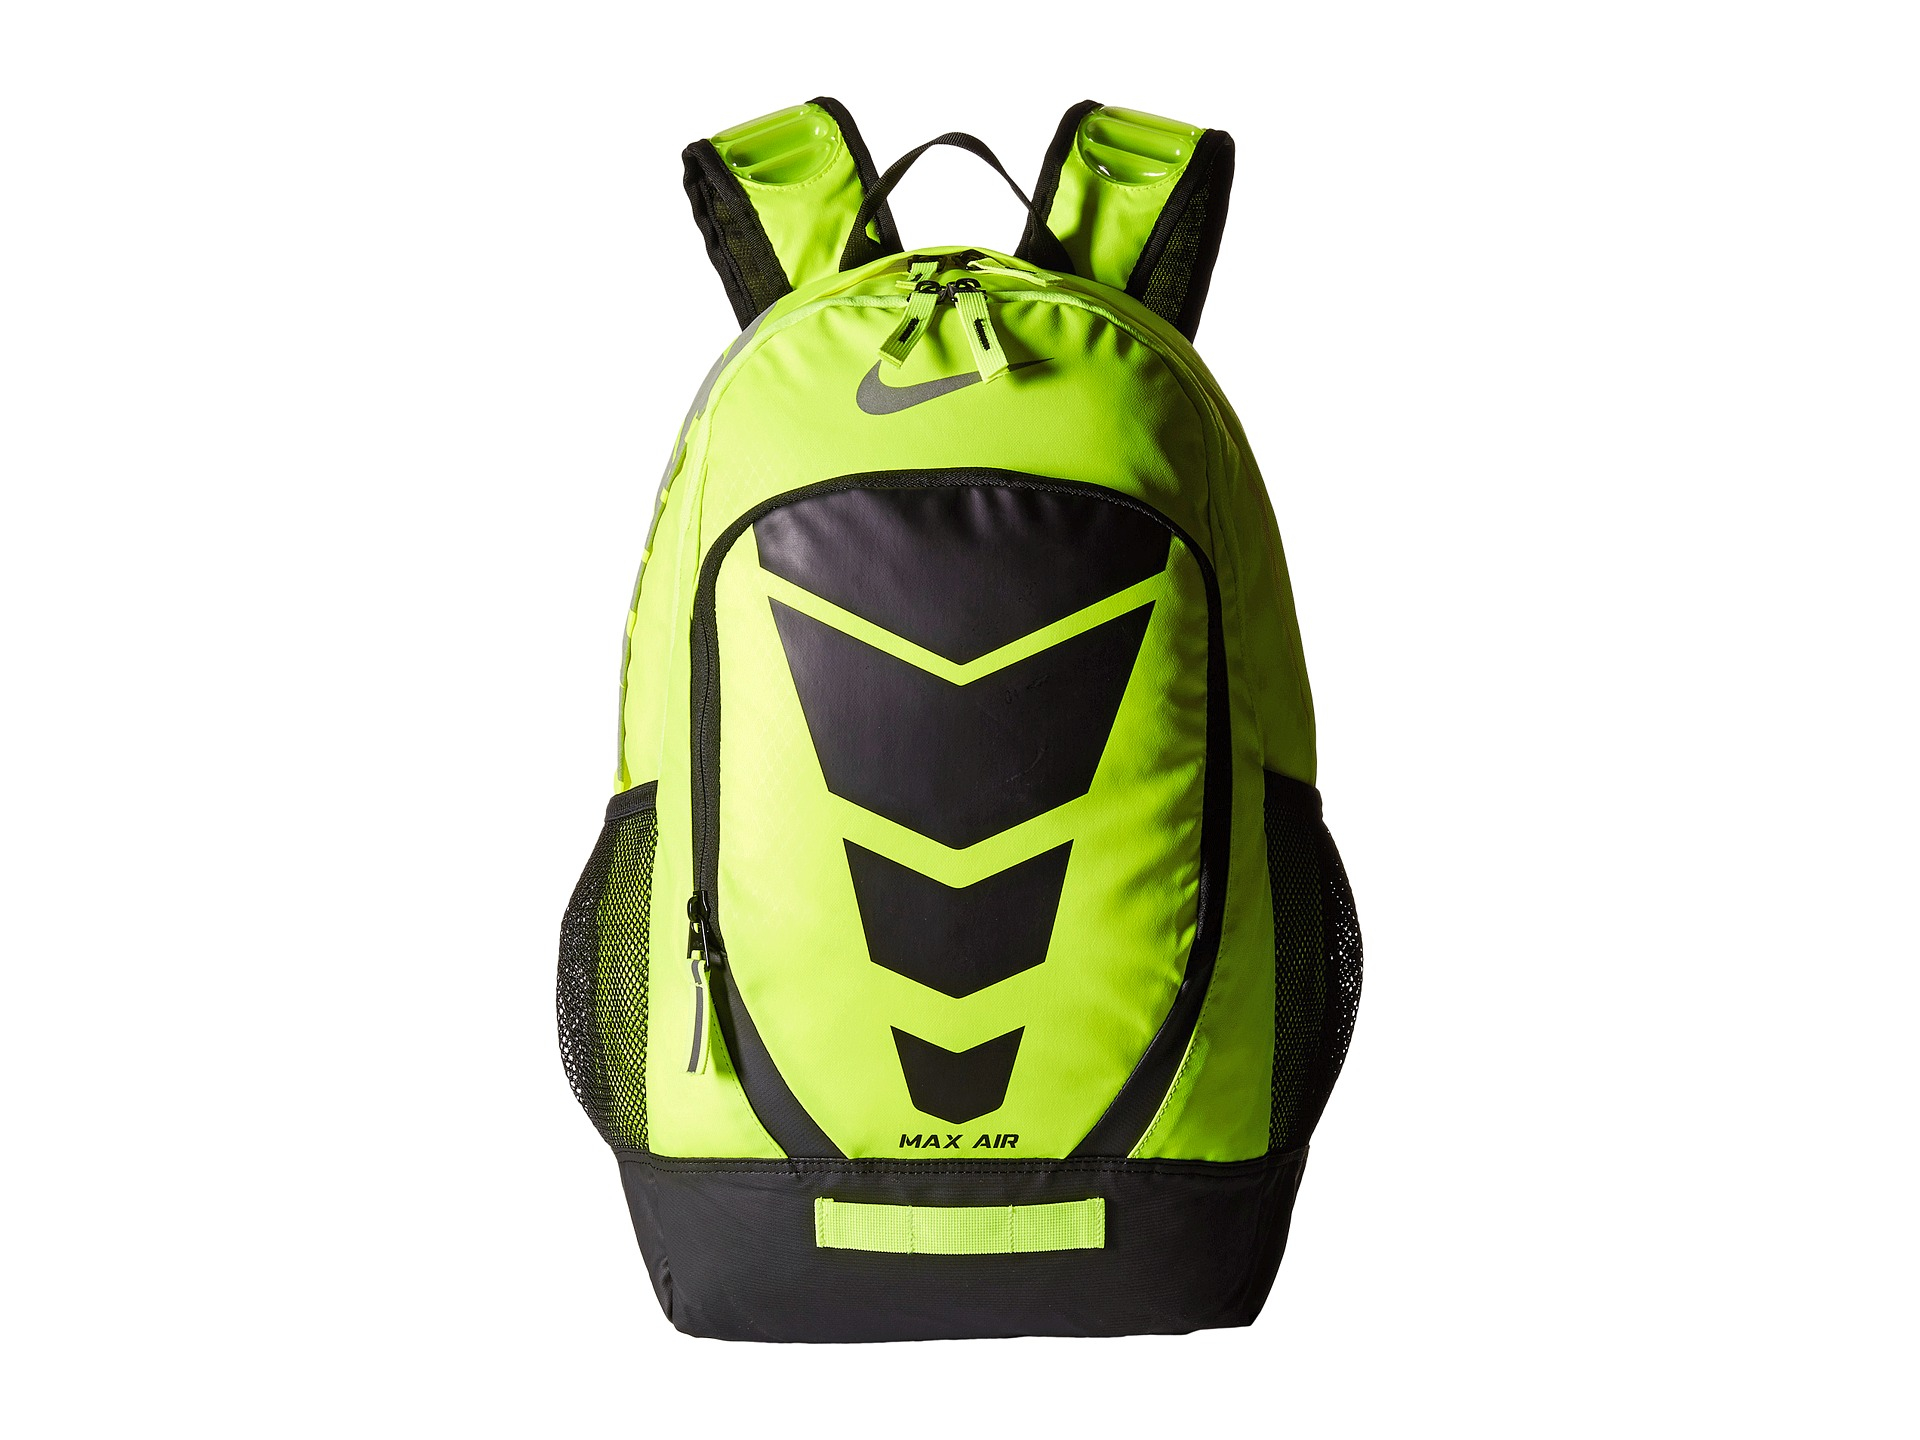 b87fc23600 Lyst - Nike Max Air Vapor Backpack Large in Green for Men